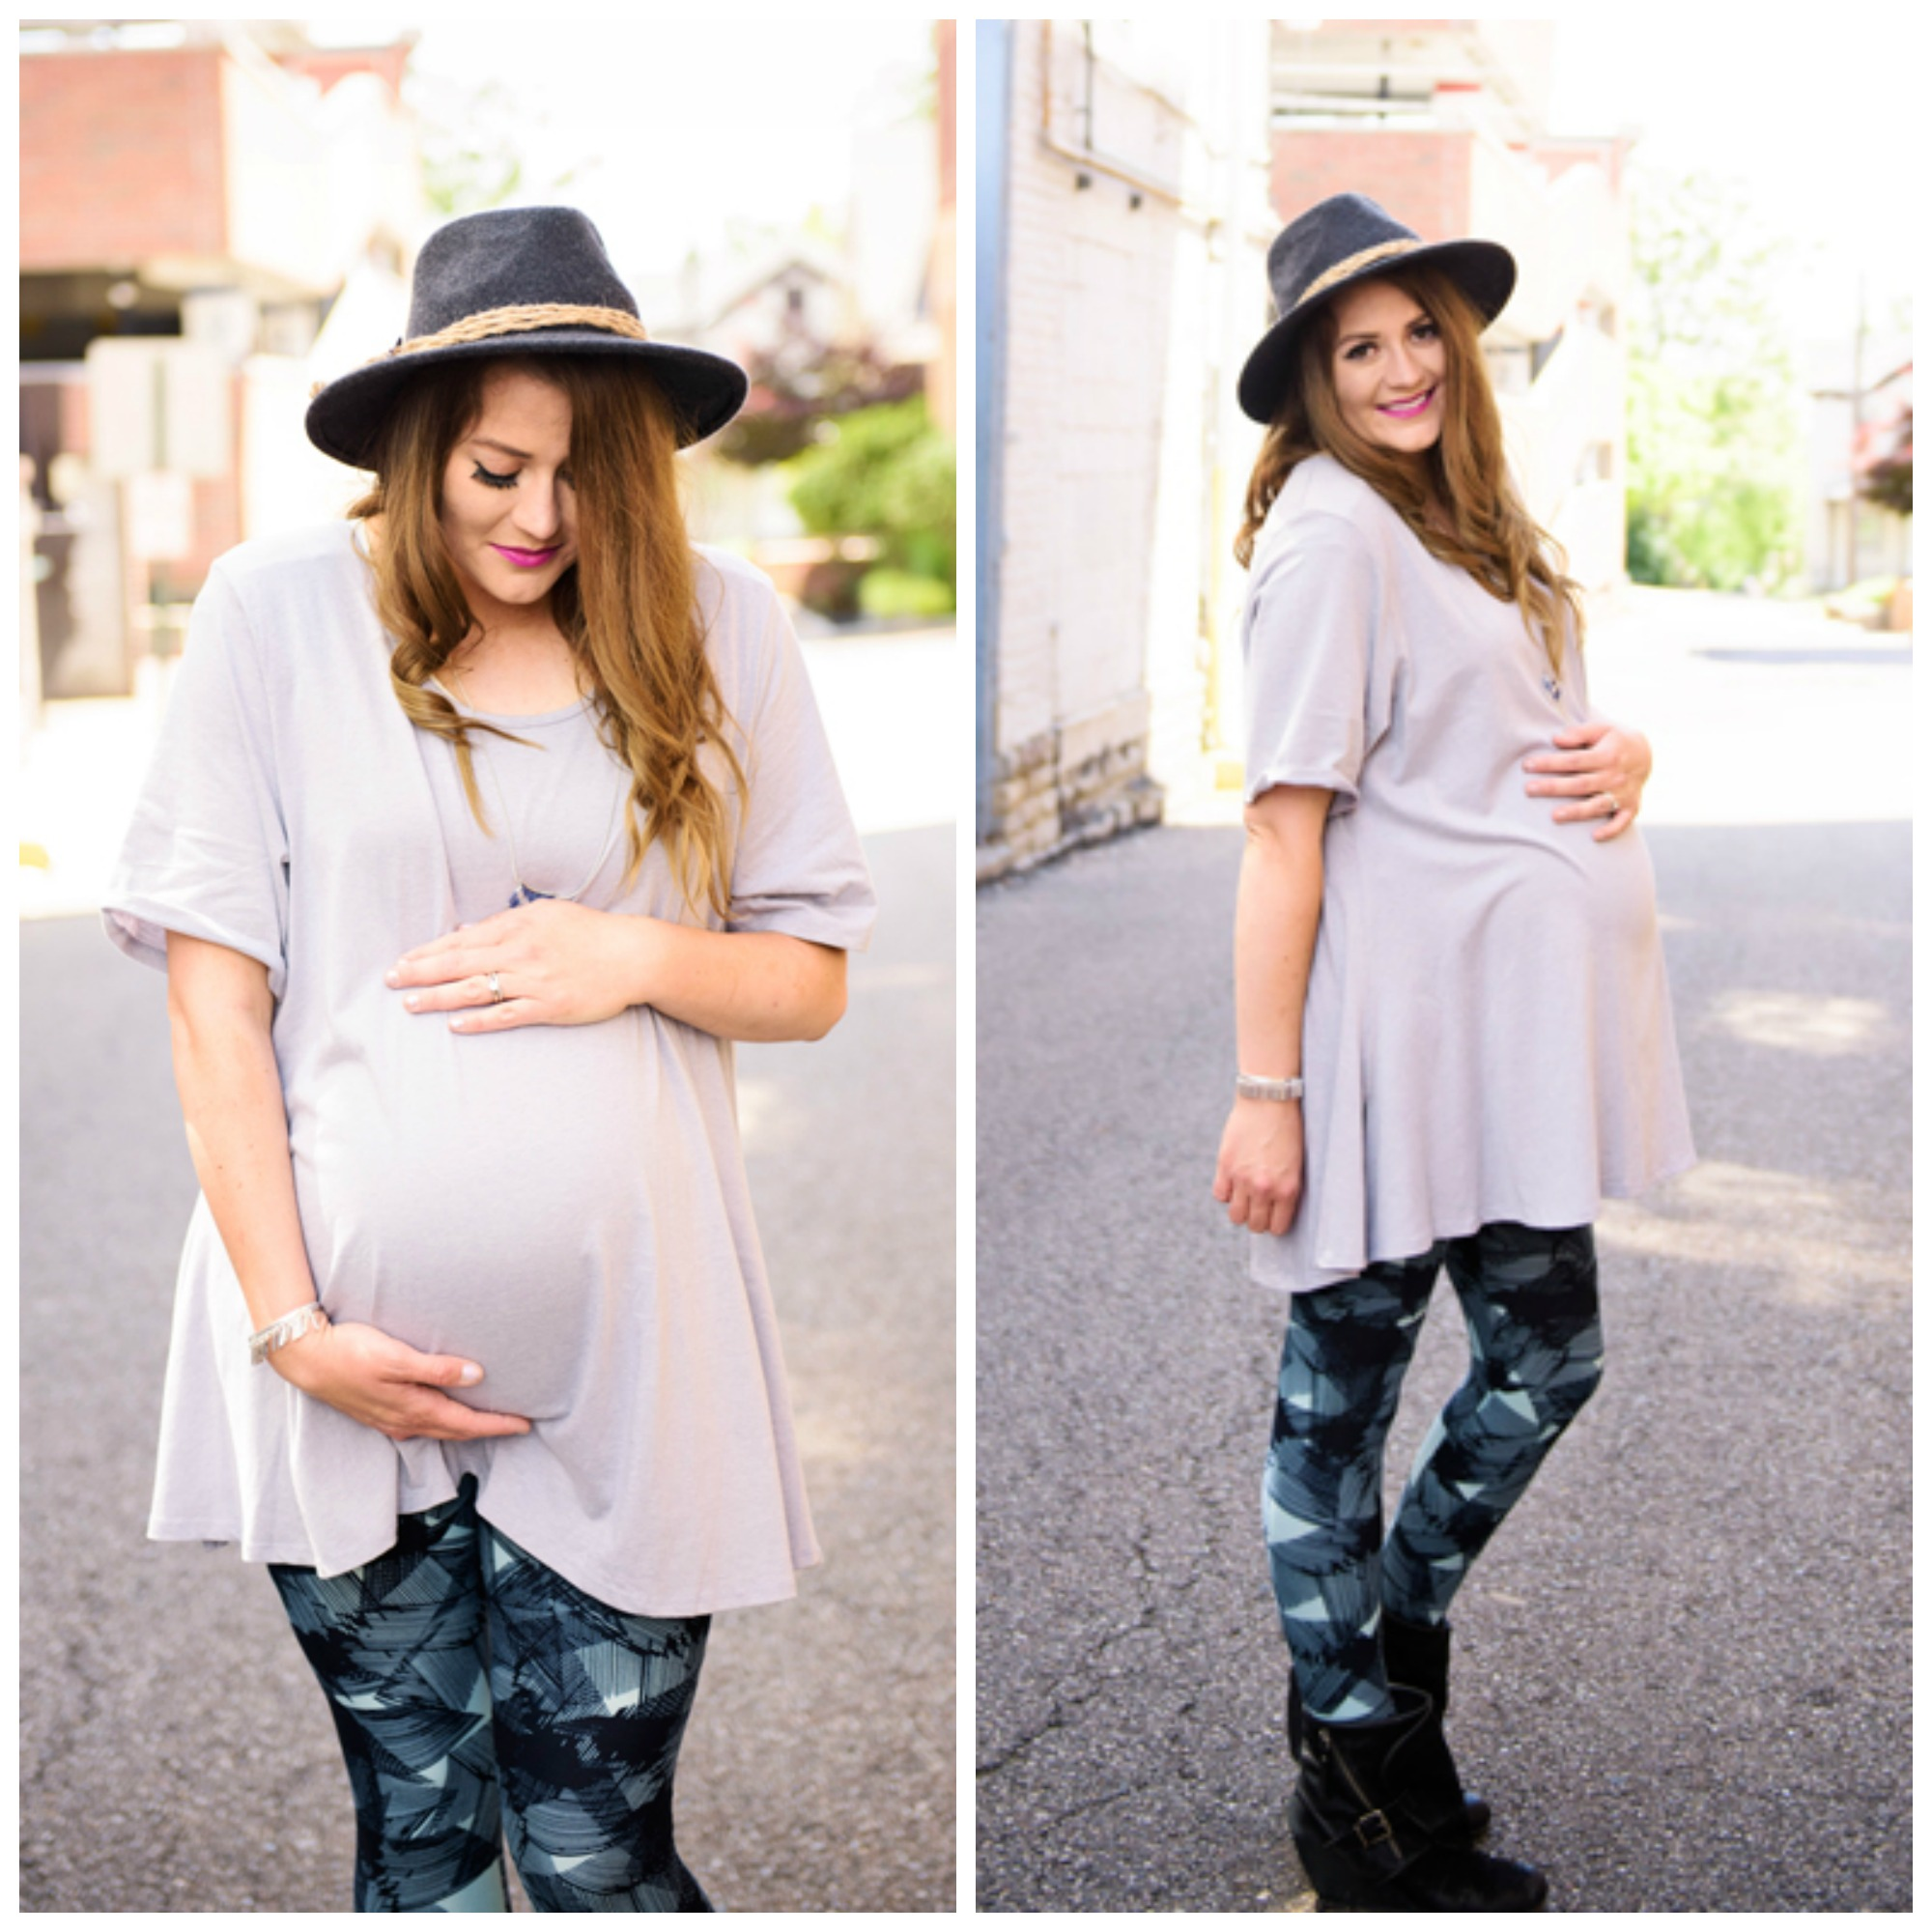 77850e90958ec It's great for early pregnancy and size up for full coverage at the end! I  sized up a few sizes to make the perfect tee into ...